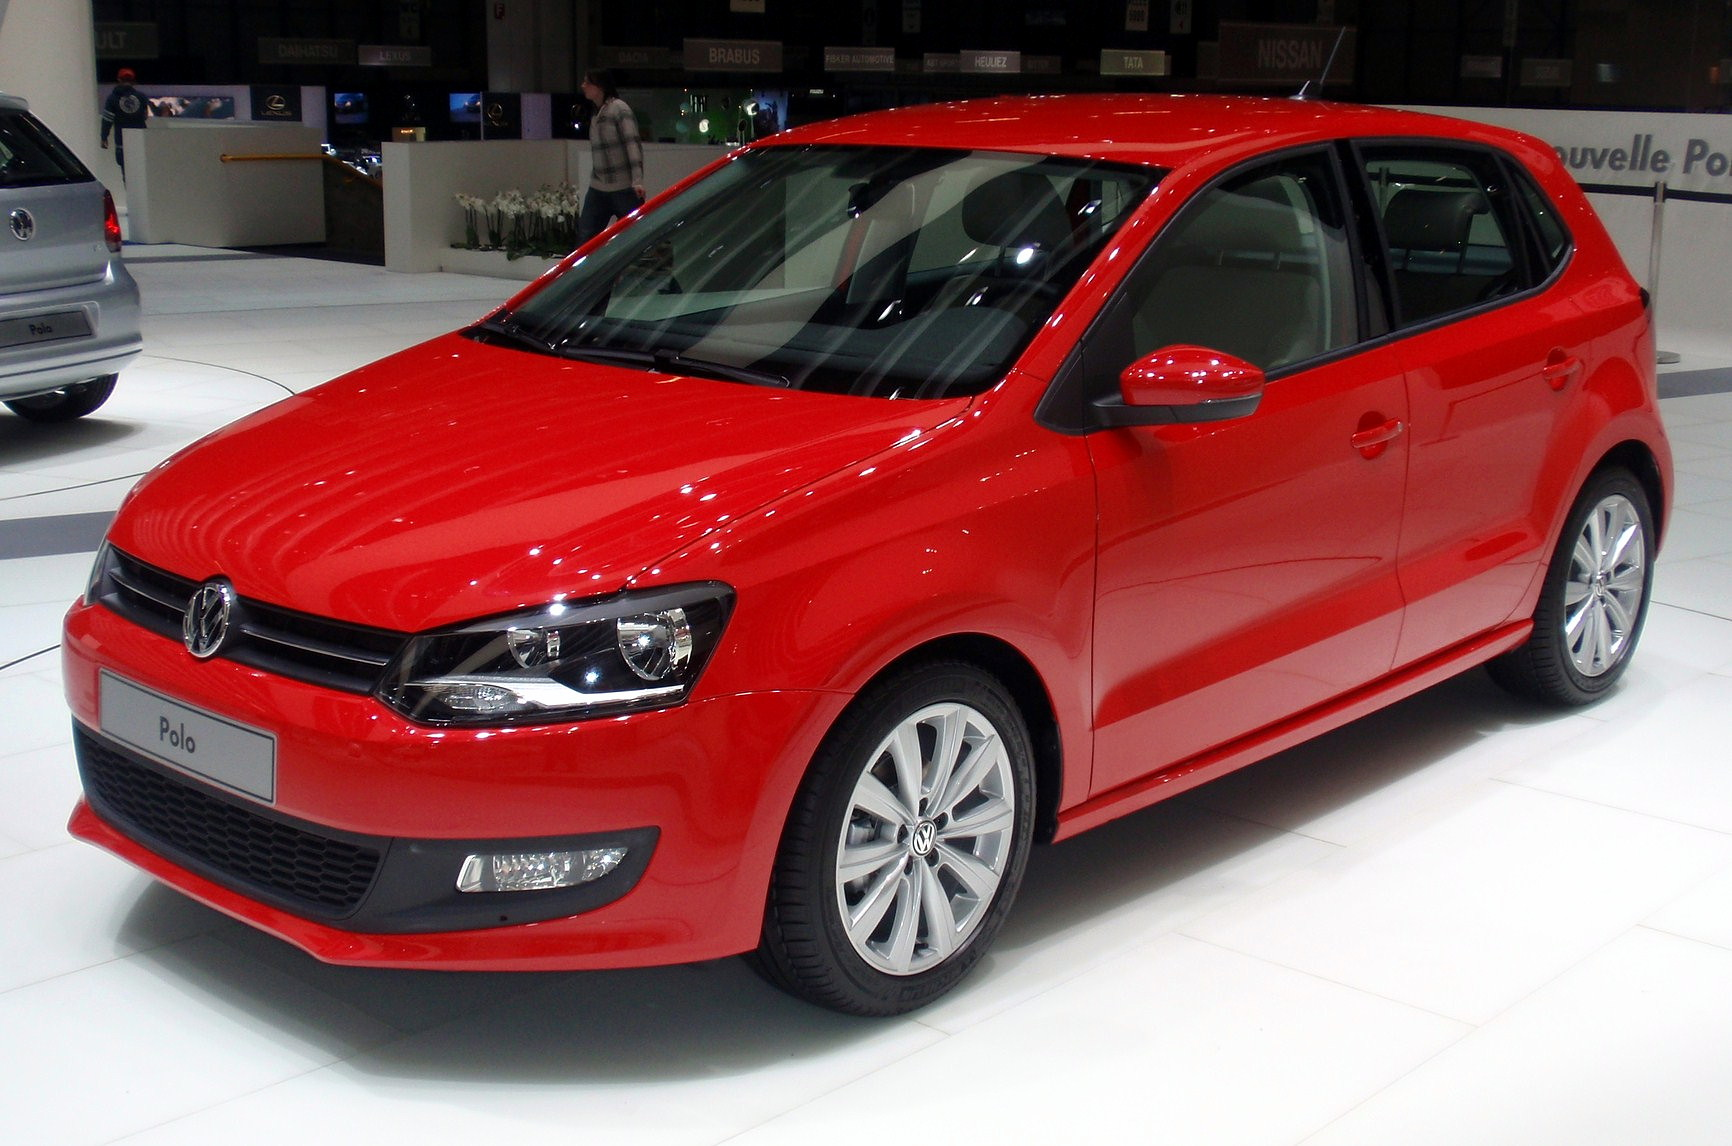 volkswagen polo wikipedija prosta enciklopedija. Black Bedroom Furniture Sets. Home Design Ideas